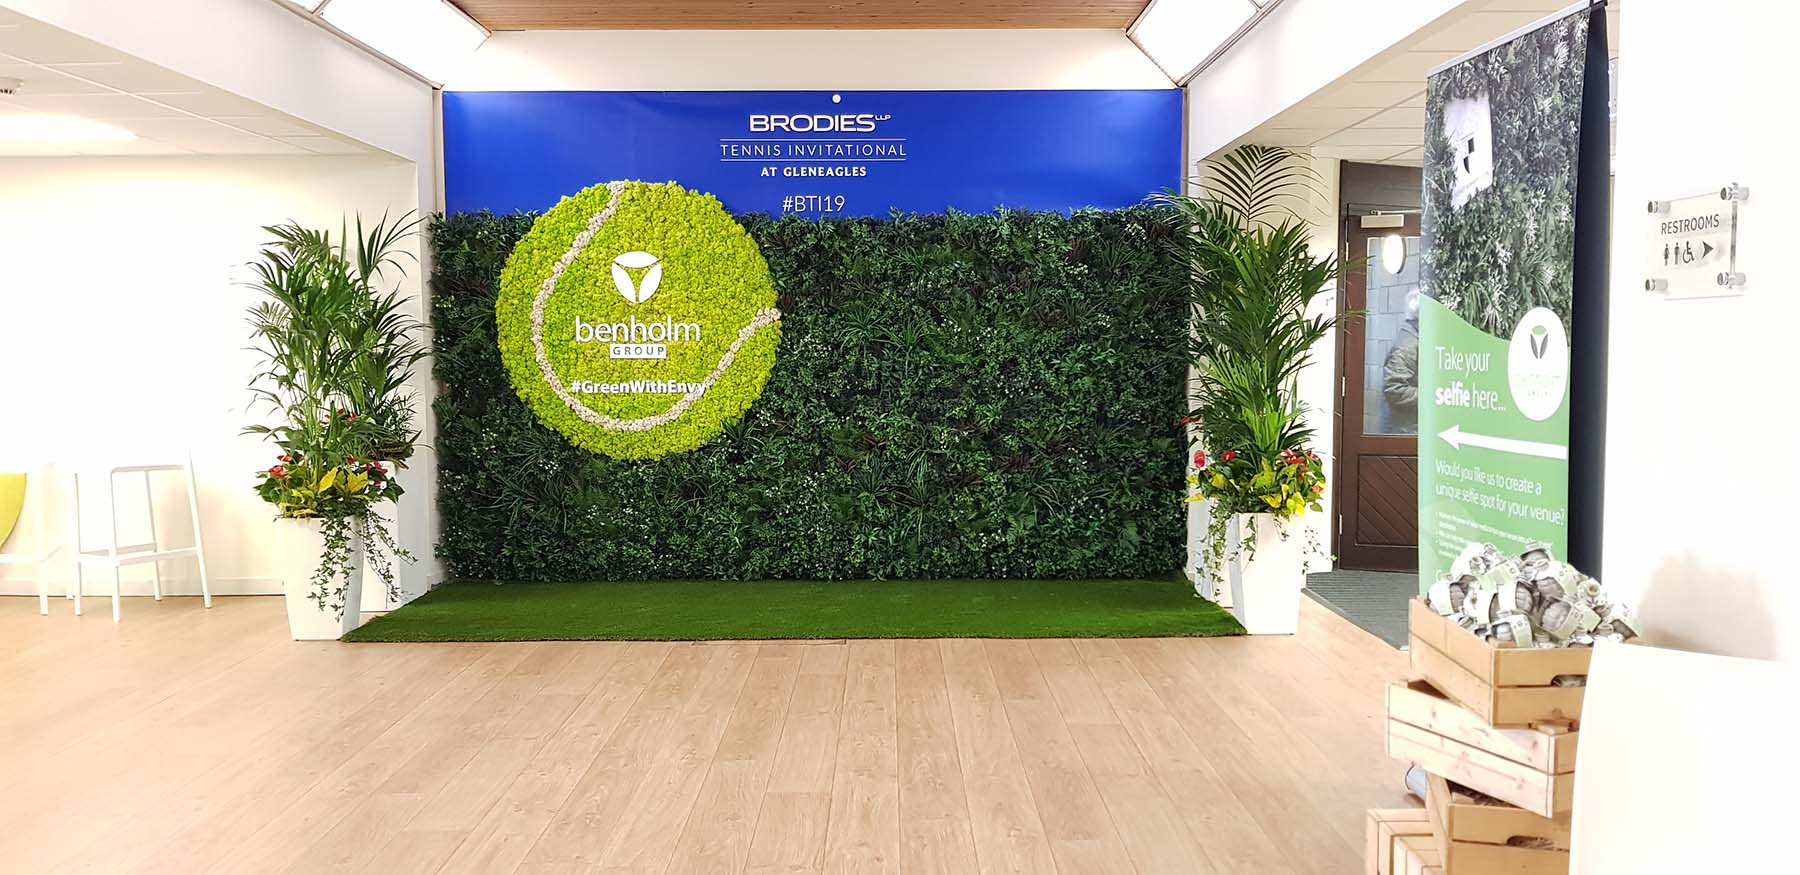 Bespoke selfie wall for Brodies' event at Gleneagles Hotel with green wall, Nordik Moss tennis ball and live Kentia palms